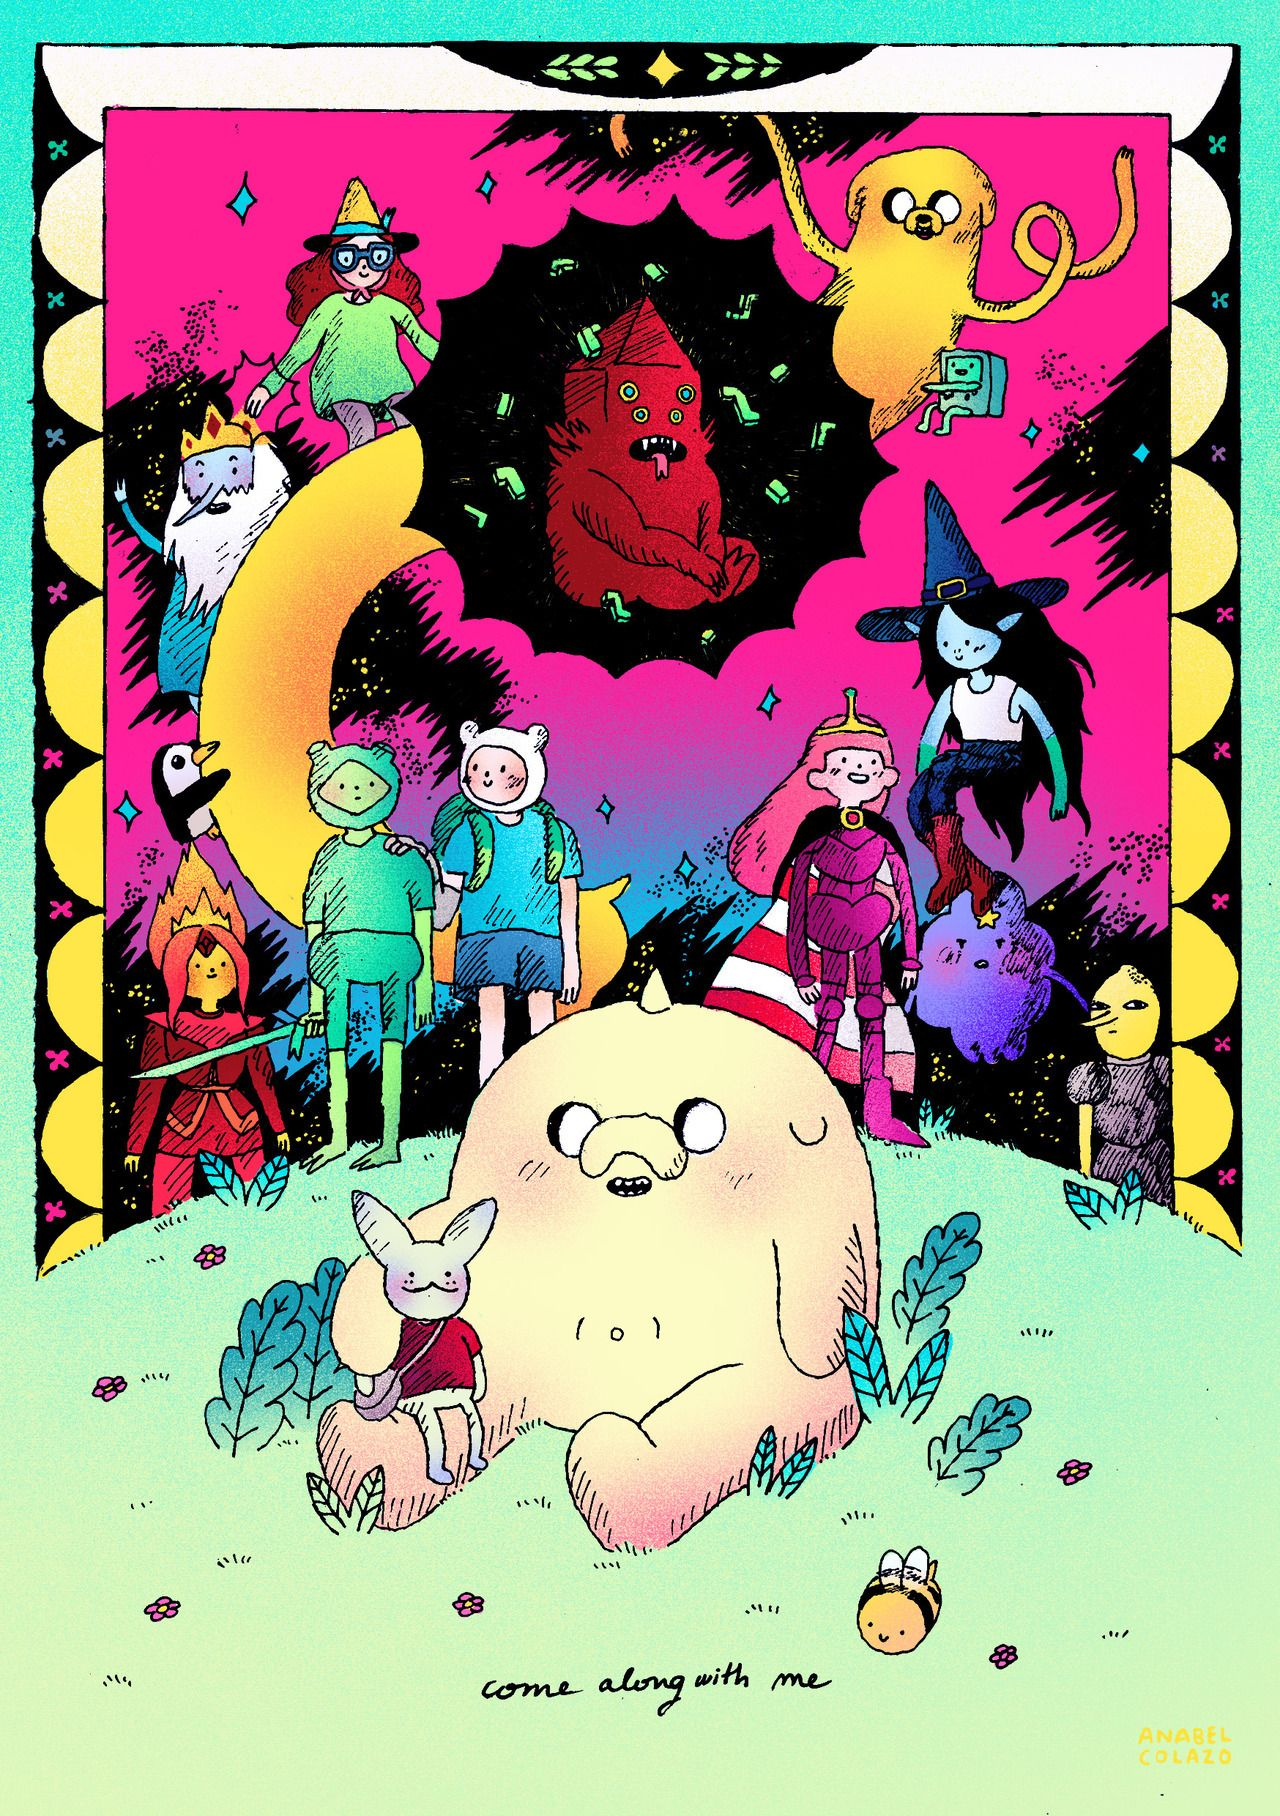 Come Along With Me Adventure Time Anime Adventure Time